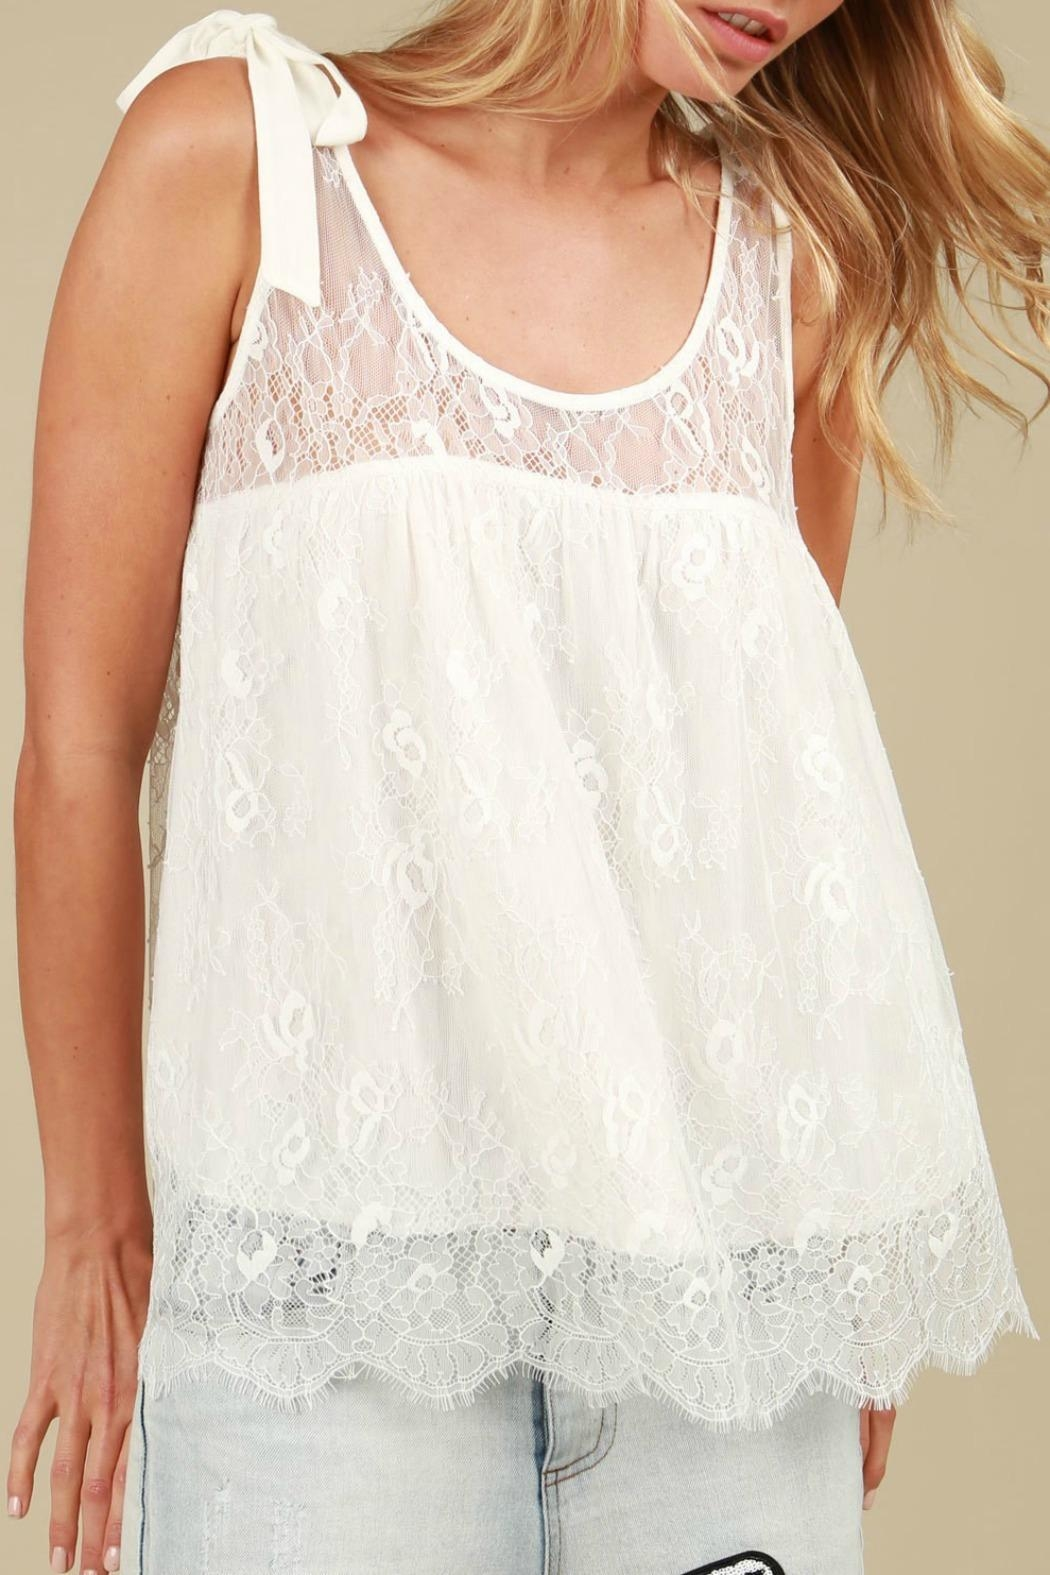 MHGS Lace Bow Top - Main Image